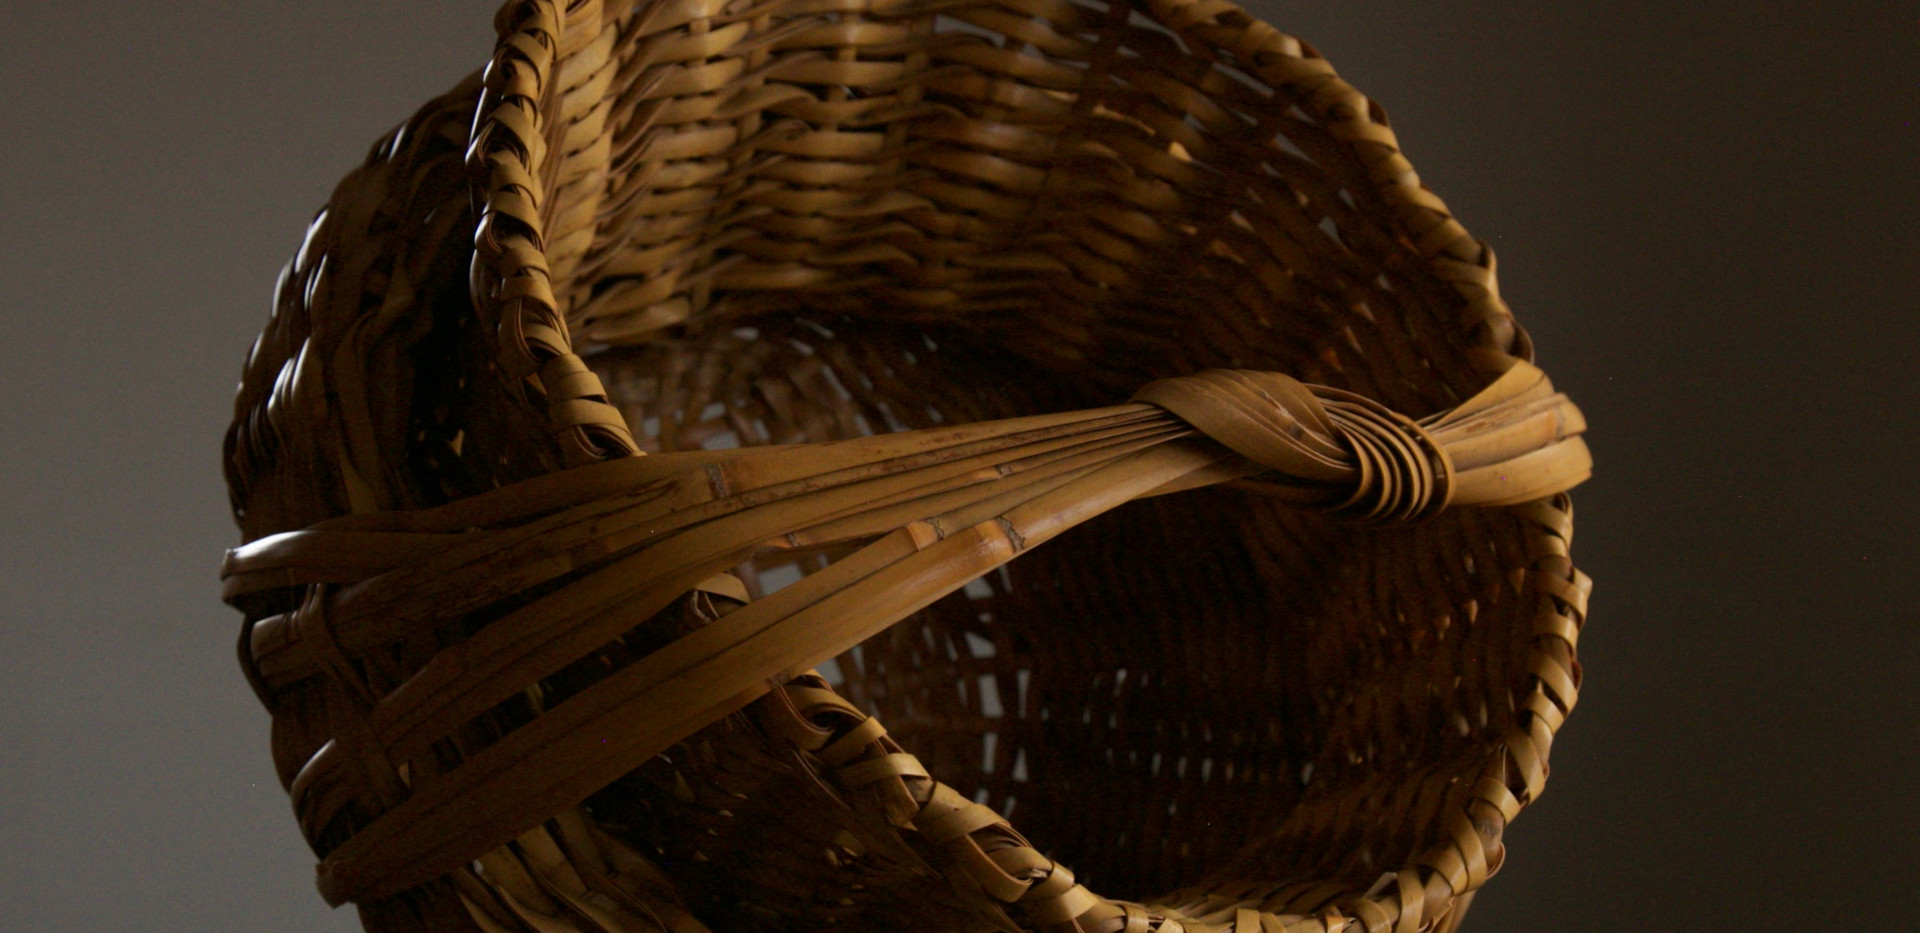 Folded basket by Iizuka Shokansai 05.jpg